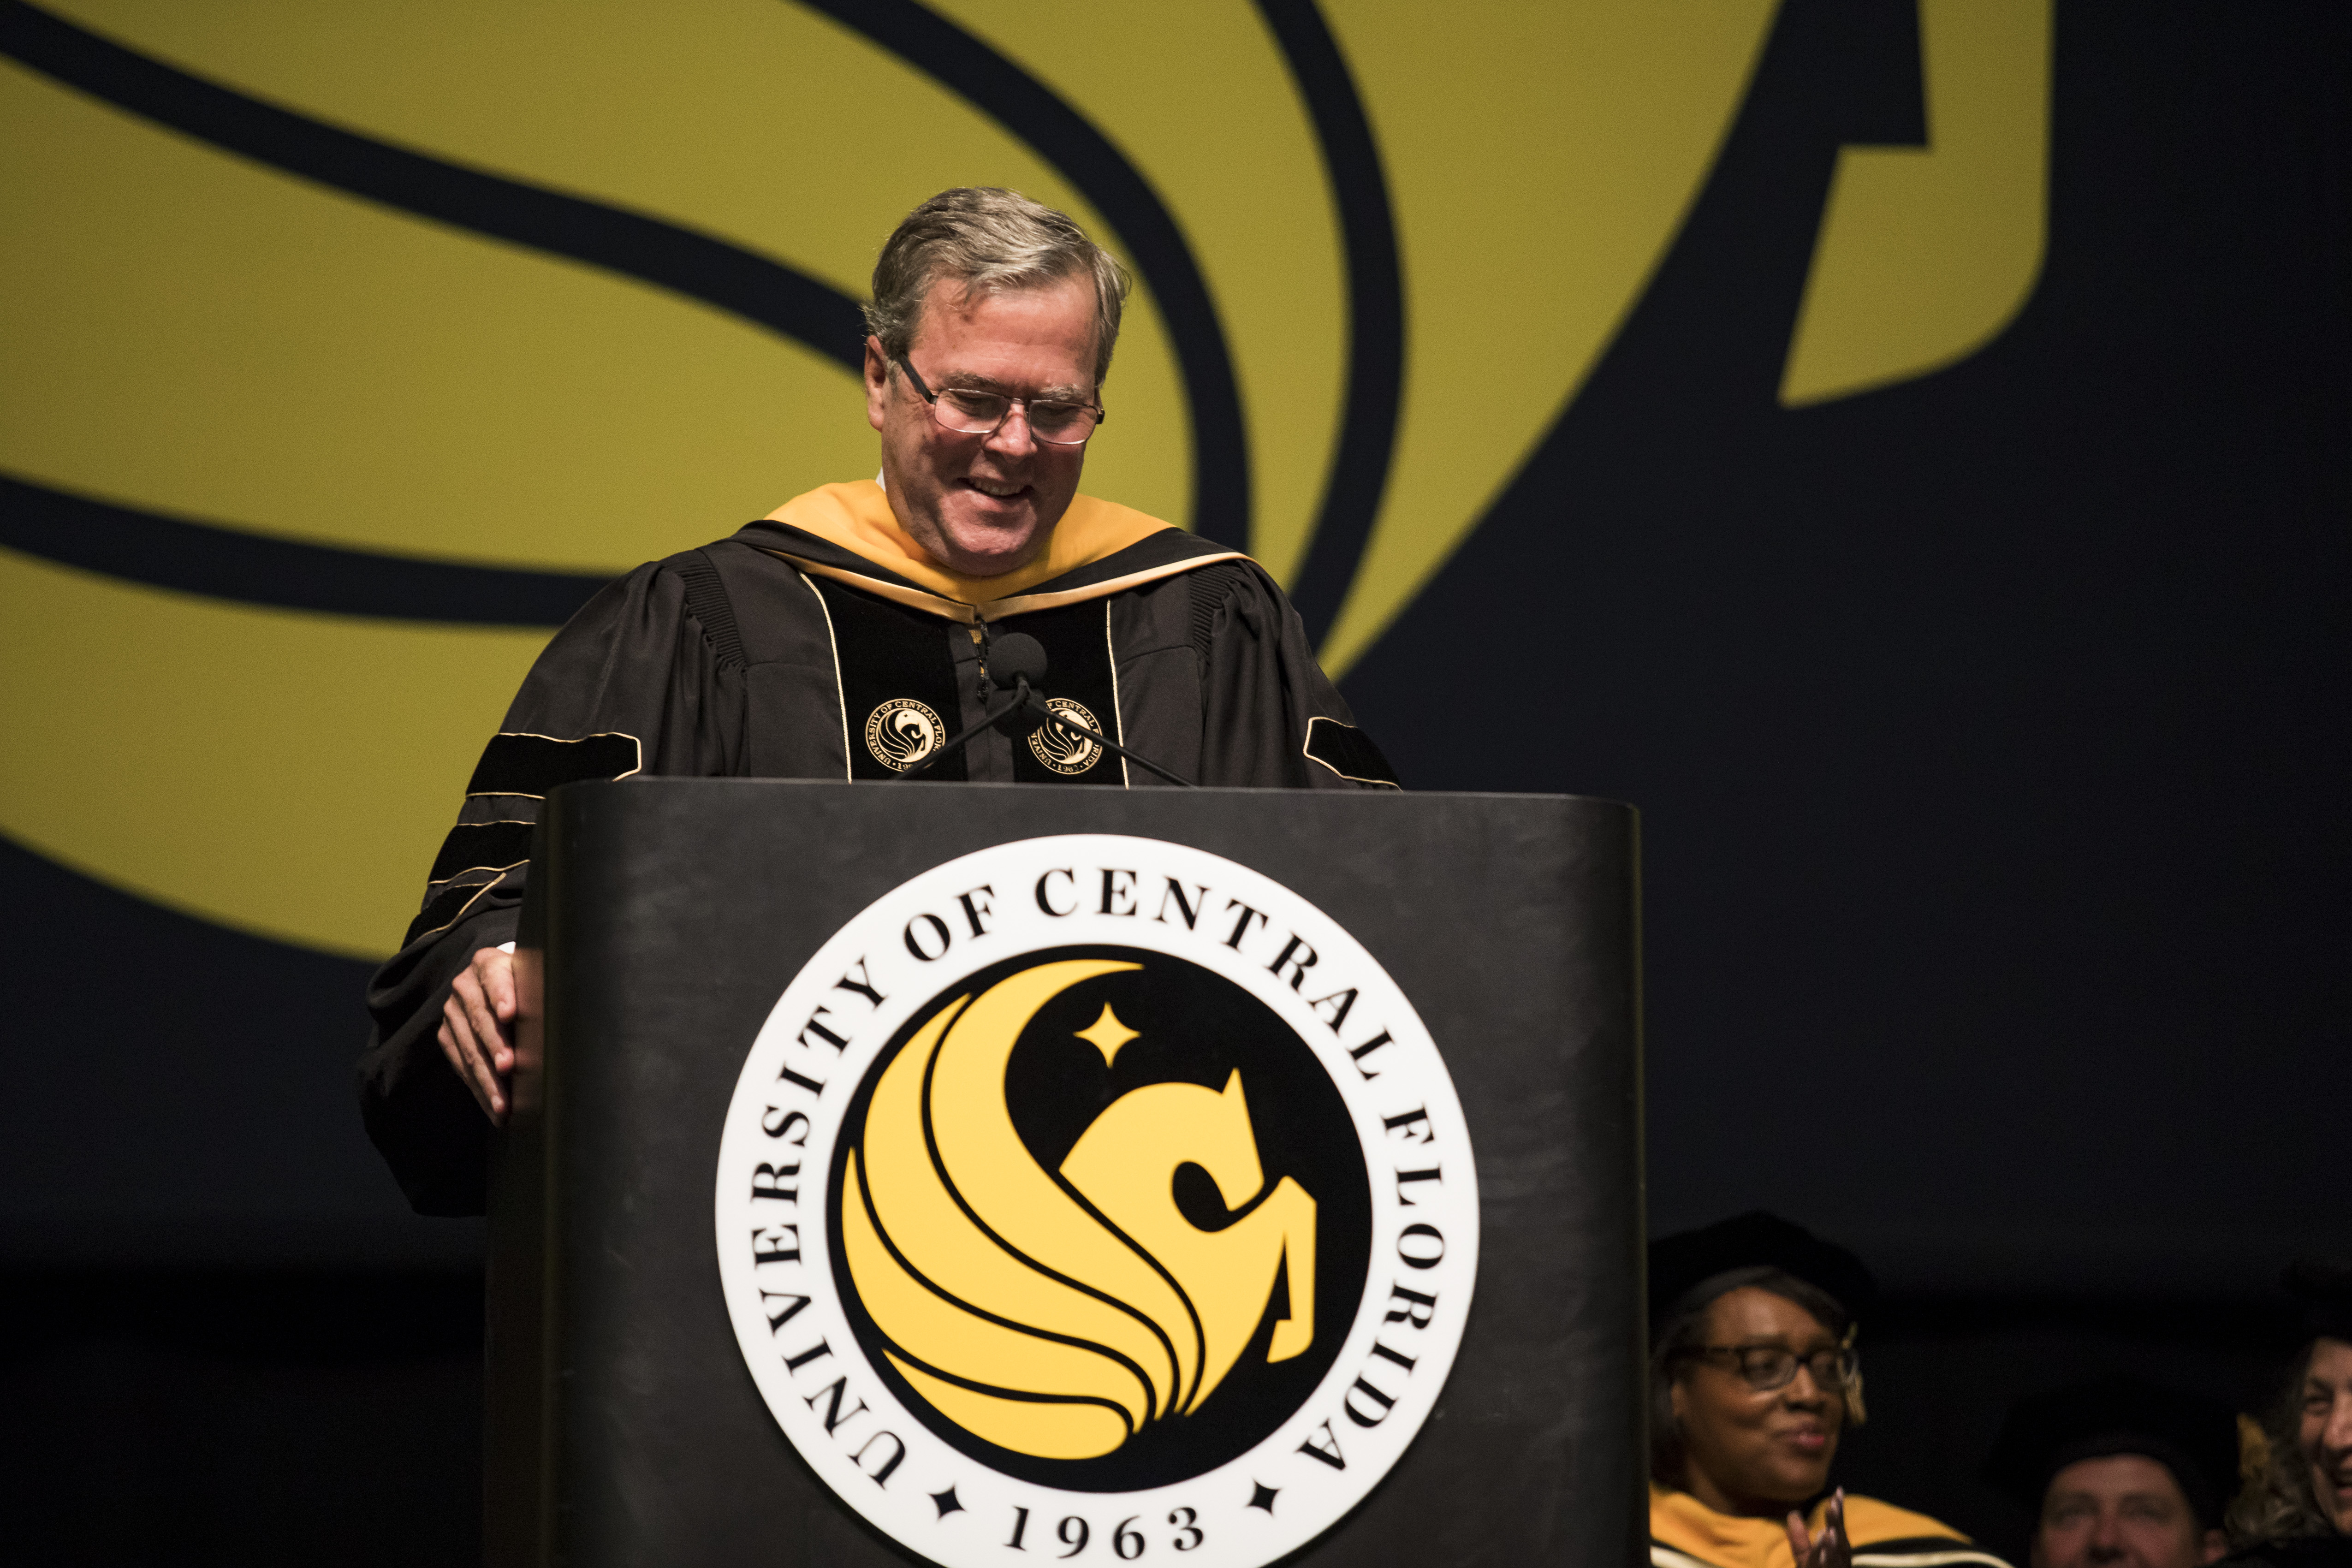 Former Florida Governor Jeb Bush wears a graduation gown as he stands behind a podium with the University of Central Florida Pegasus emblem on it.